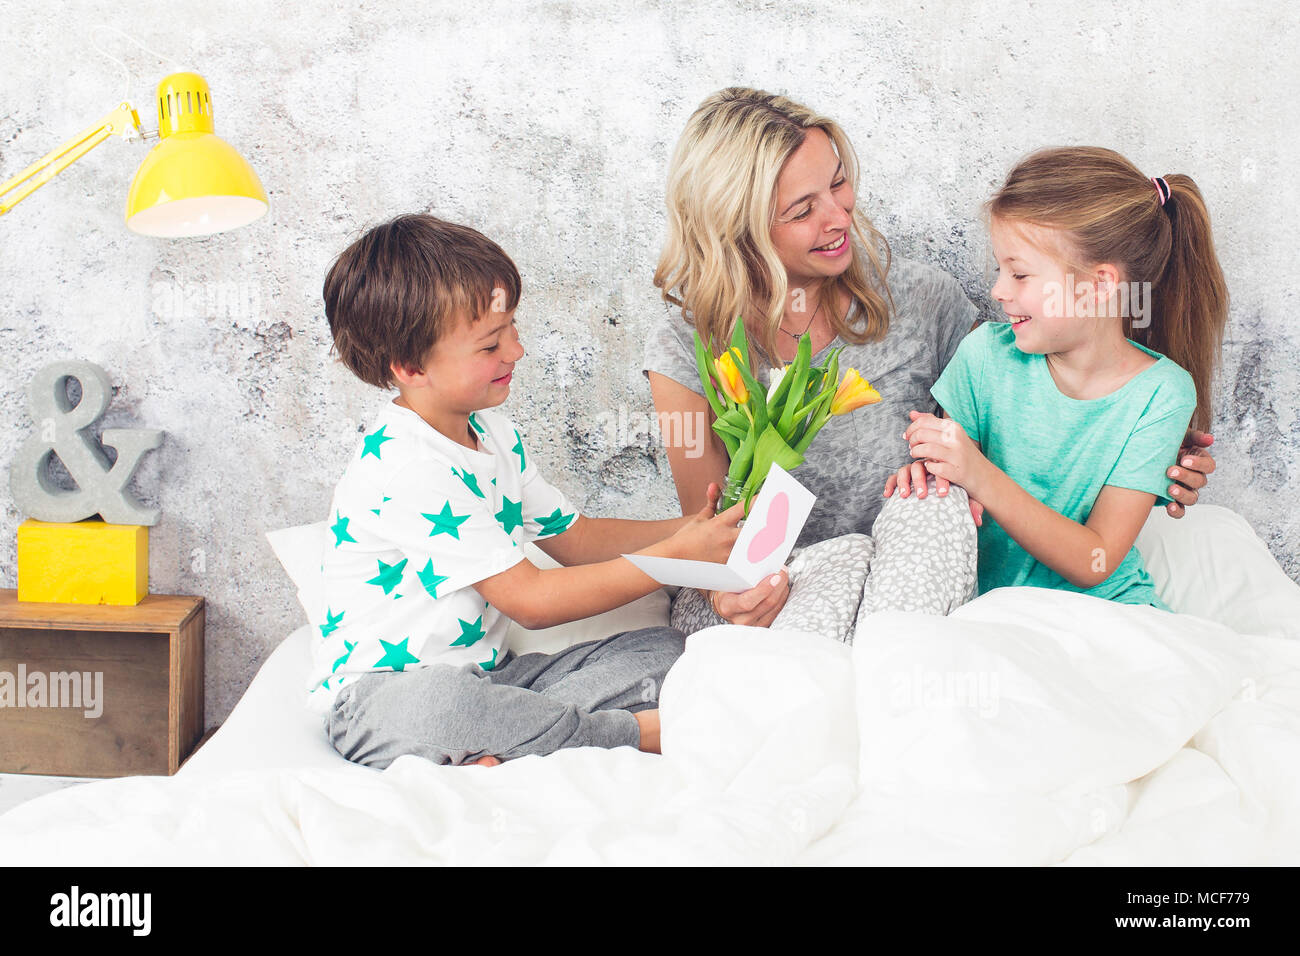 Happy Family - Children congratulate on Mother's Day - Stock Image